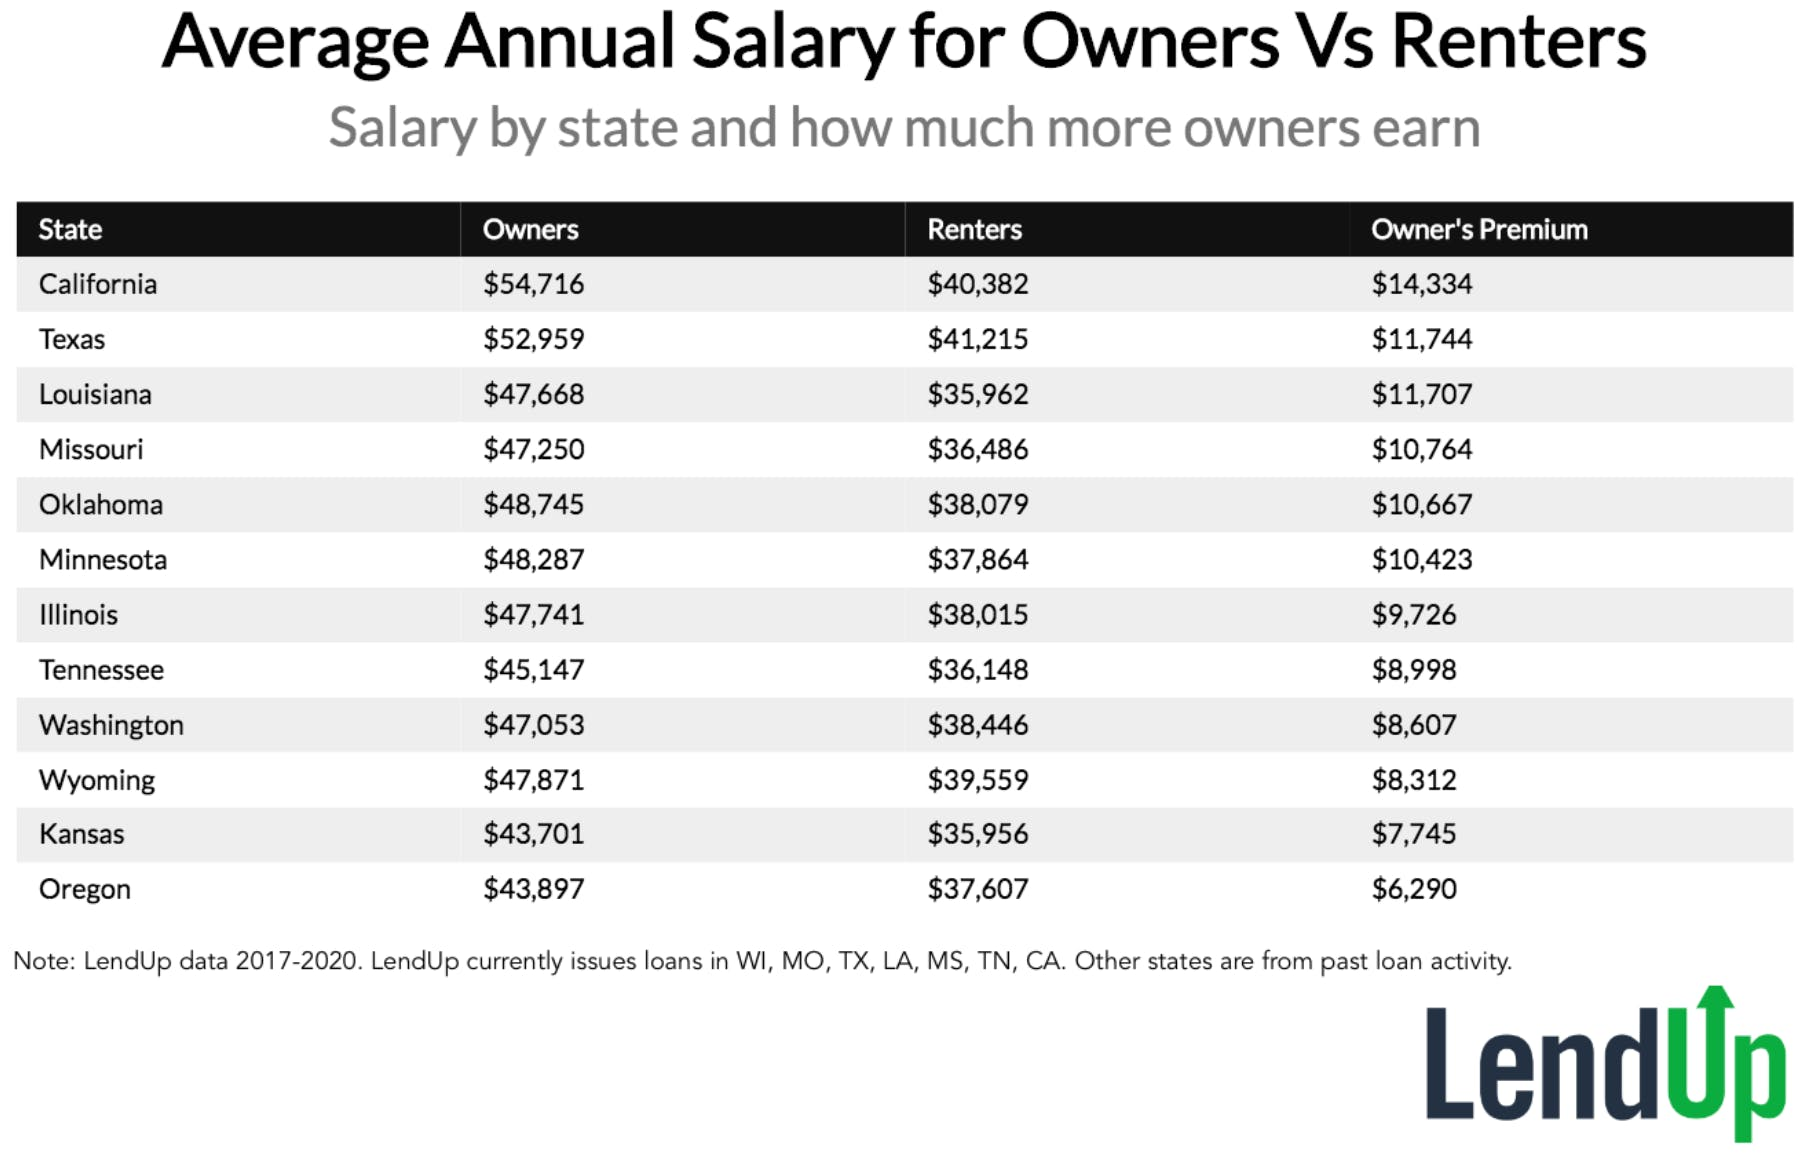 Average Annual Salary for Owners vs Renters